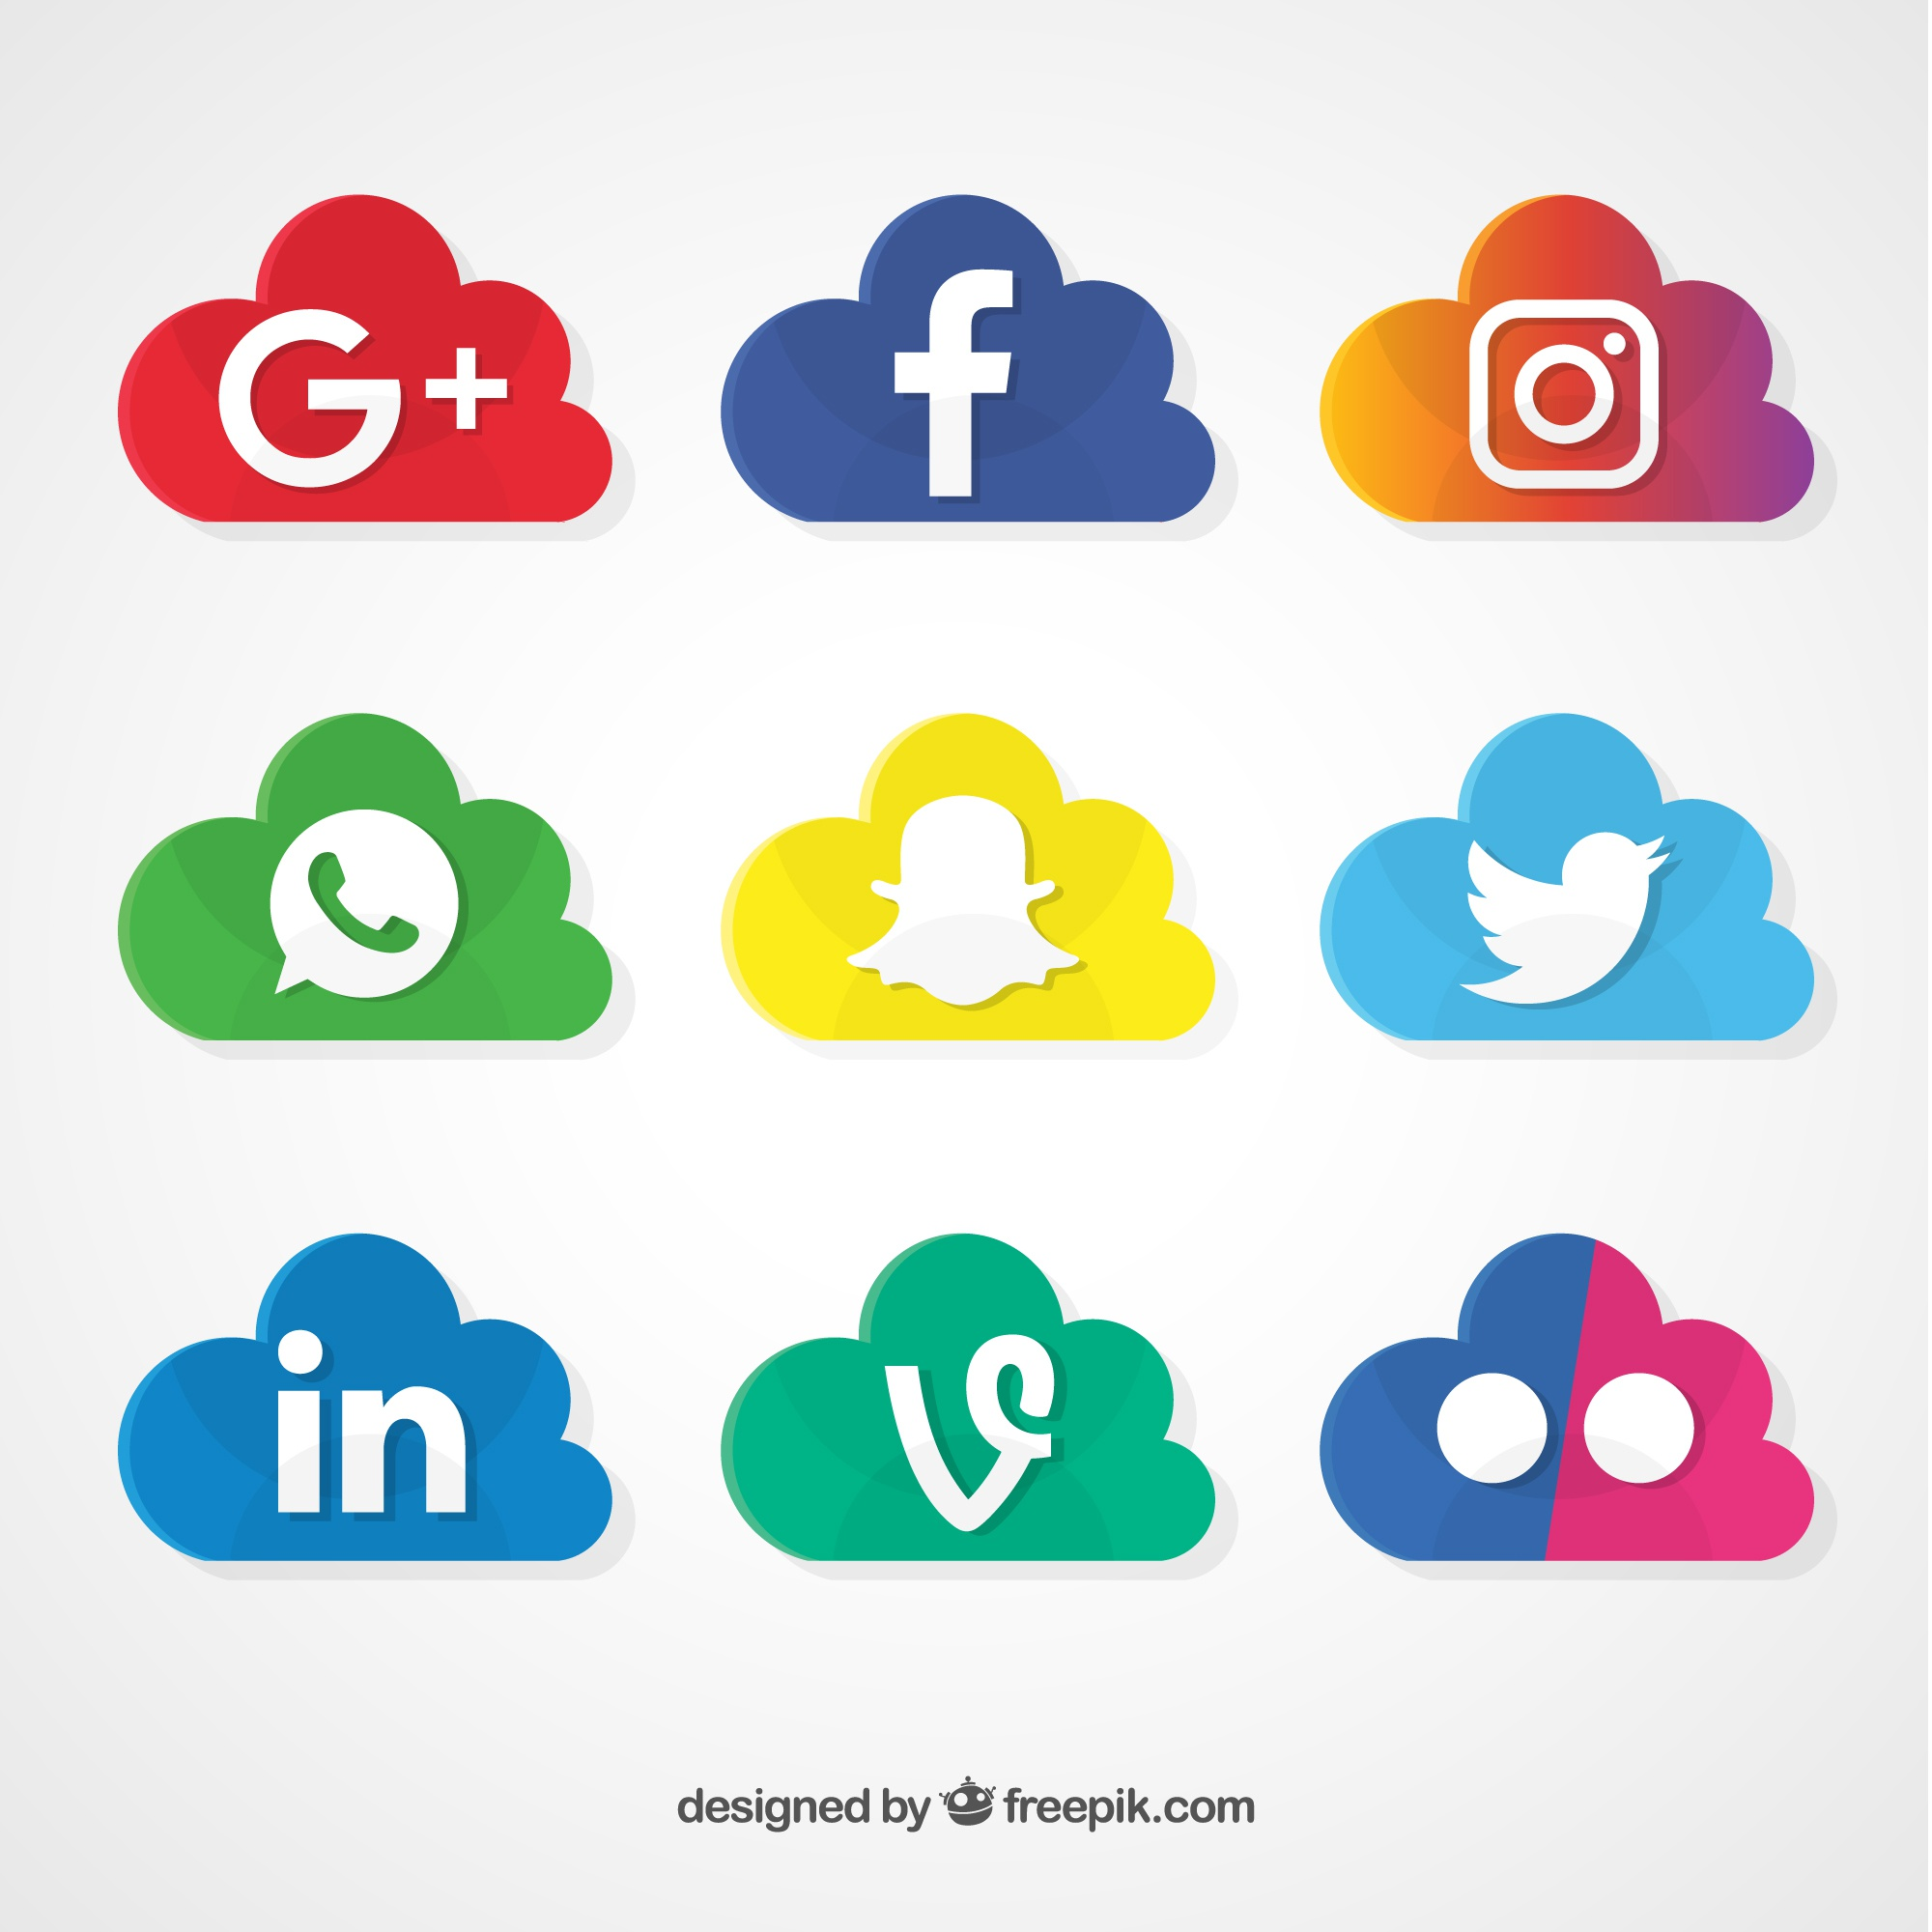 Social network icons in cloud shape